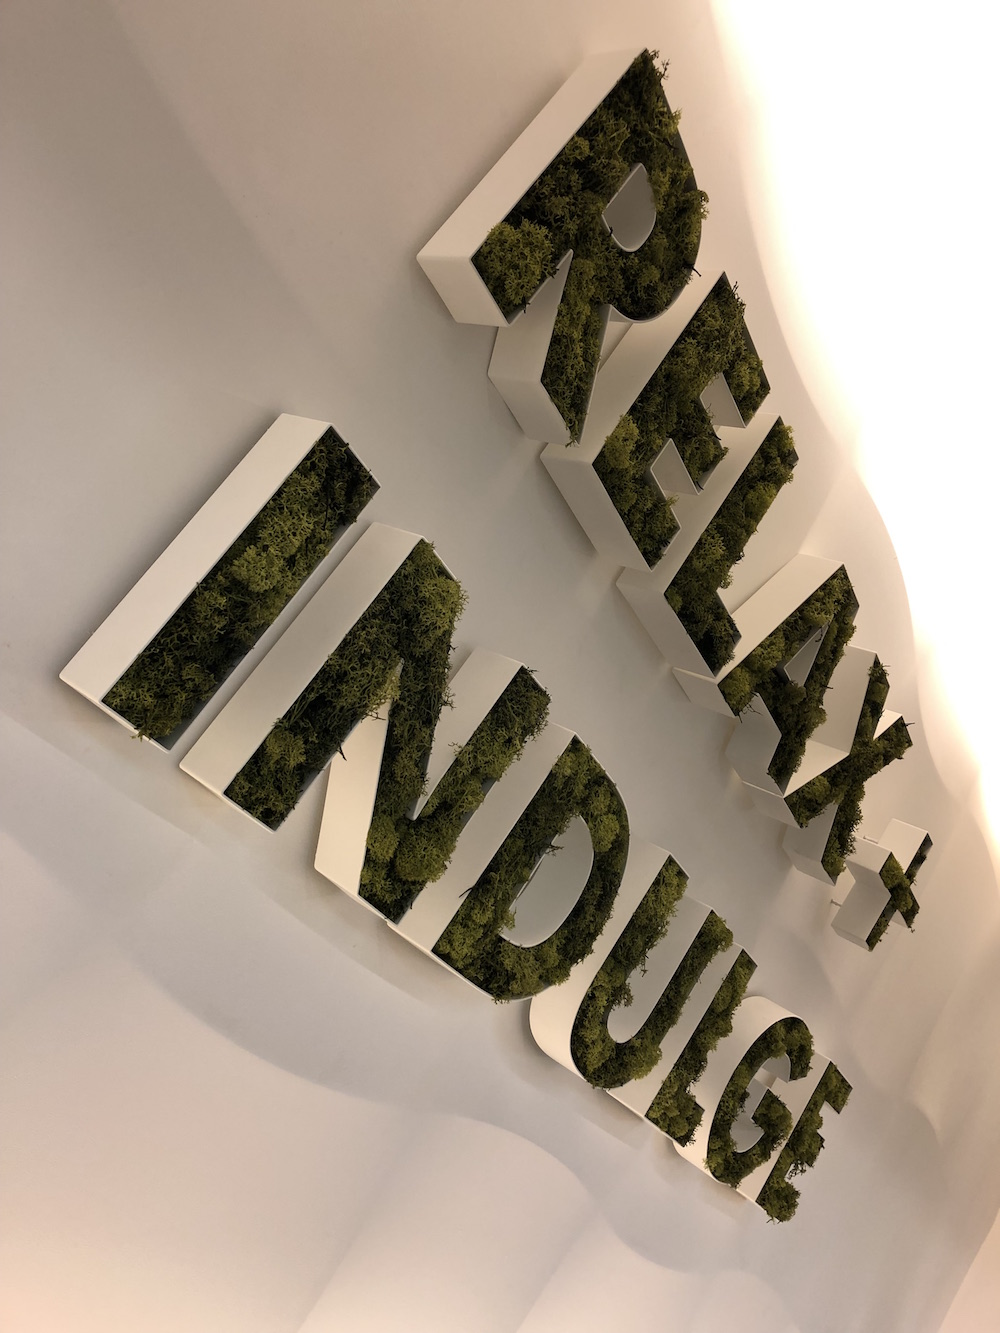 A 'relax + indulge' sign made out of plants